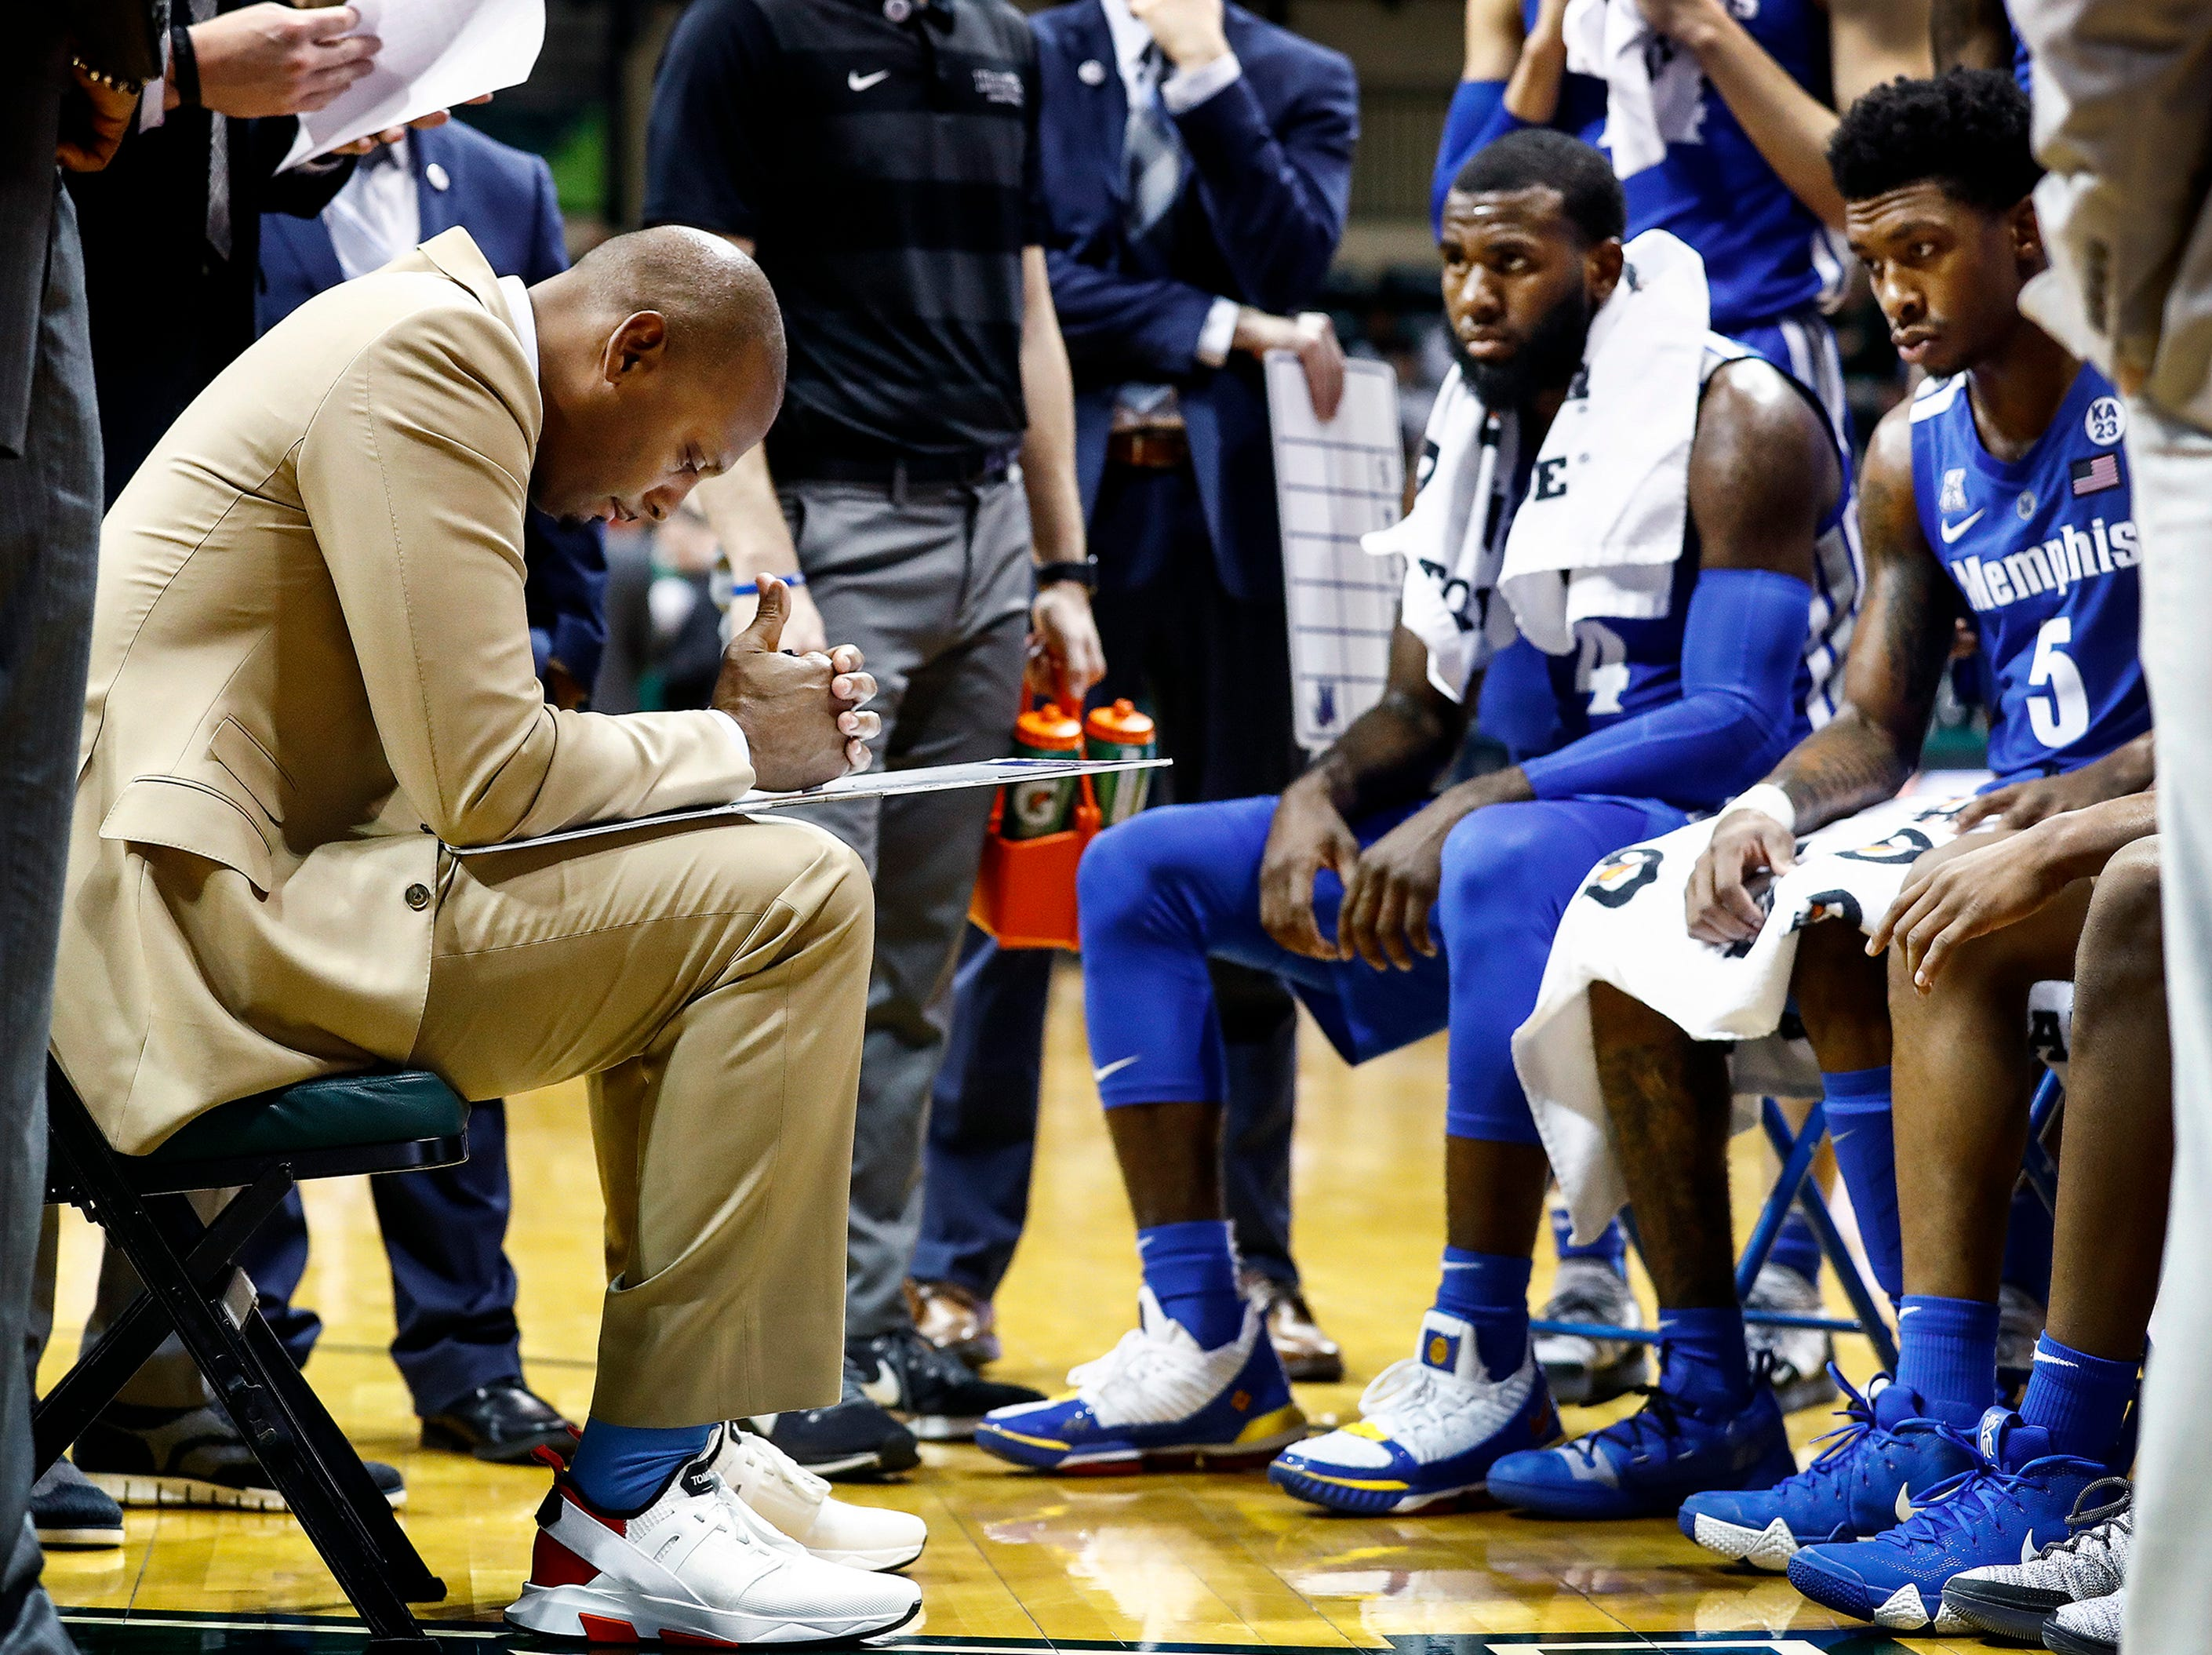 Memphis head coach Penny Hardaway collects his thoughts in a timeout during a 84-78 loss to USF in Tampa, Saturday, February 2, 2019.